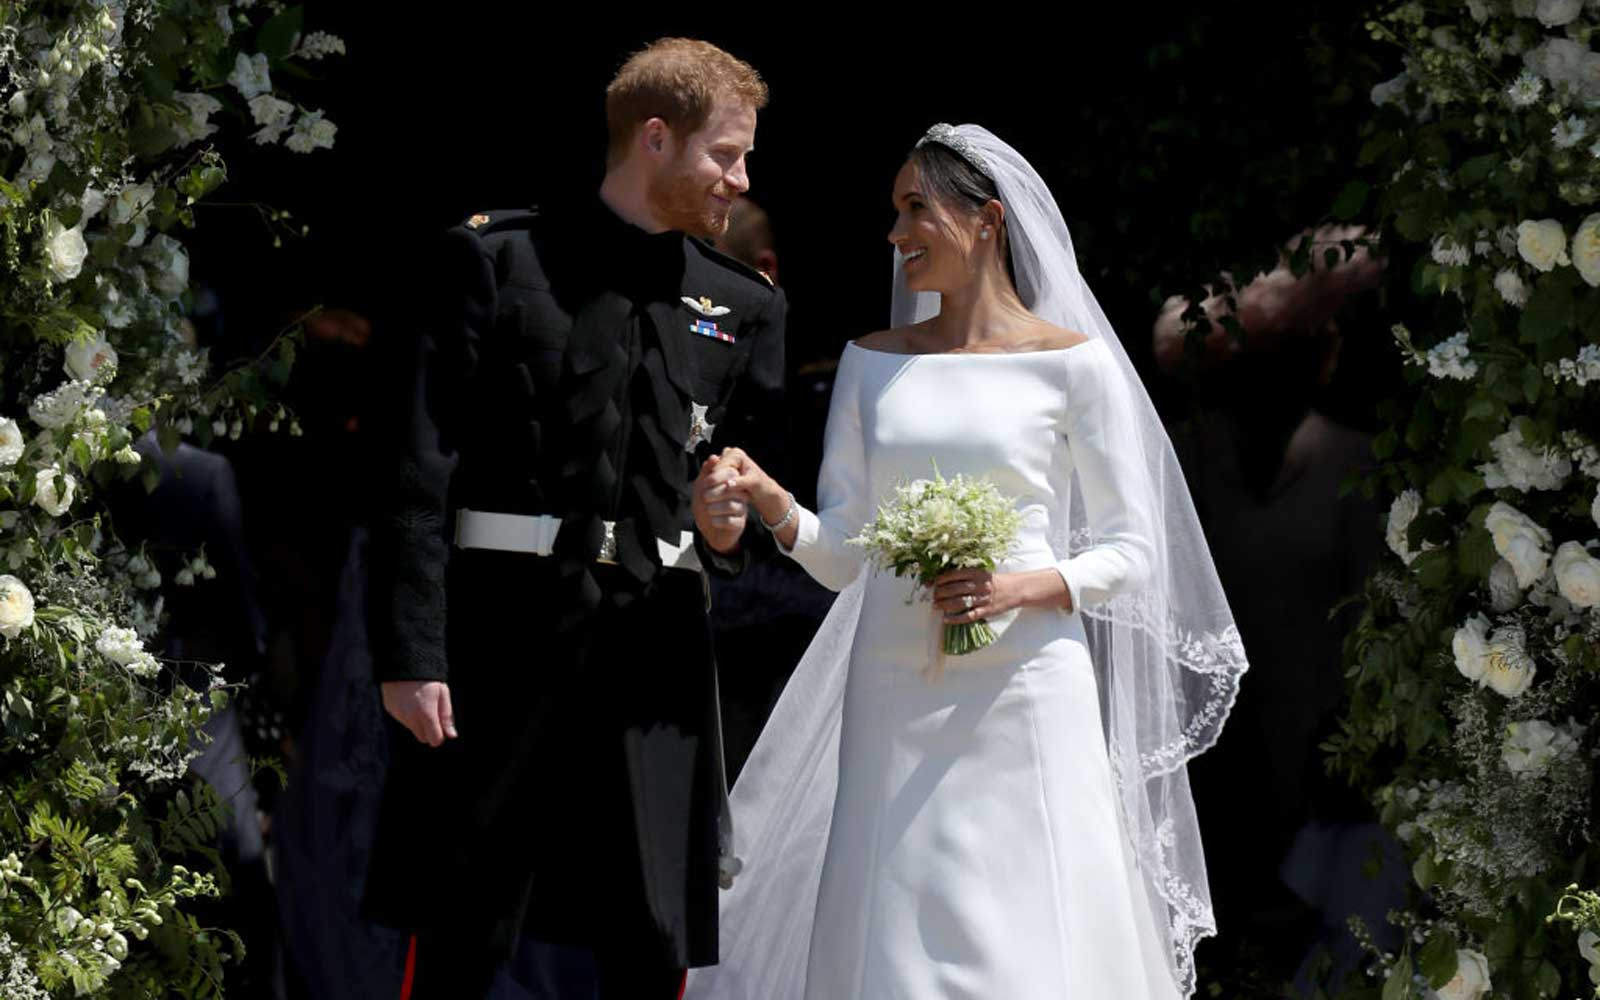 Prince Harry and Meghan Markle the Duke and Duchess of Sussex